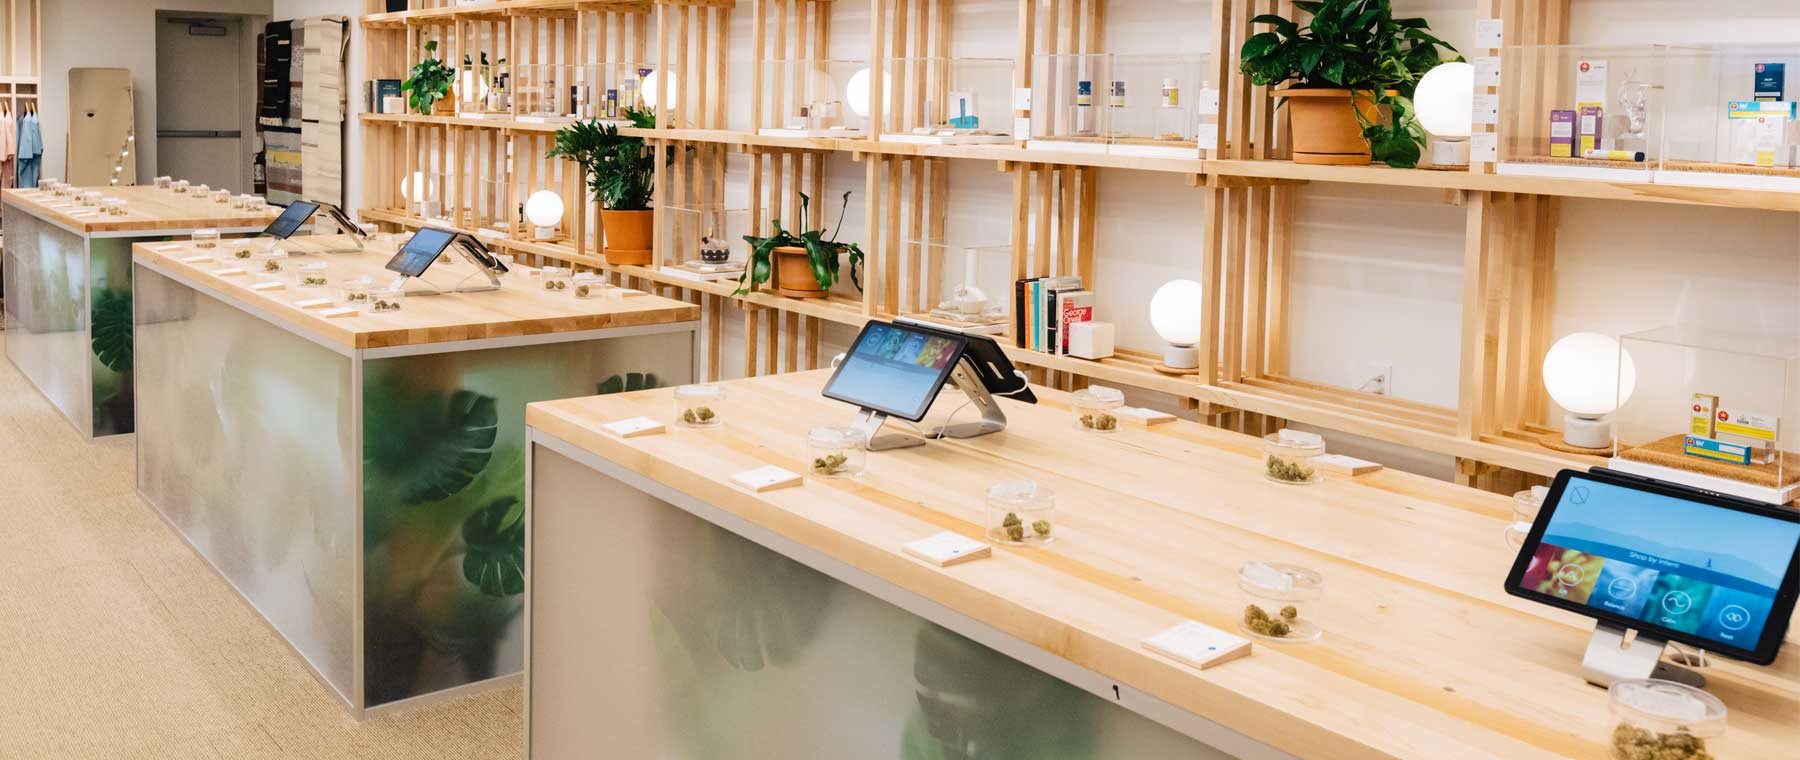 Pot Shop Primer: A design lover's guide to Ottawa's legal marijuana stores